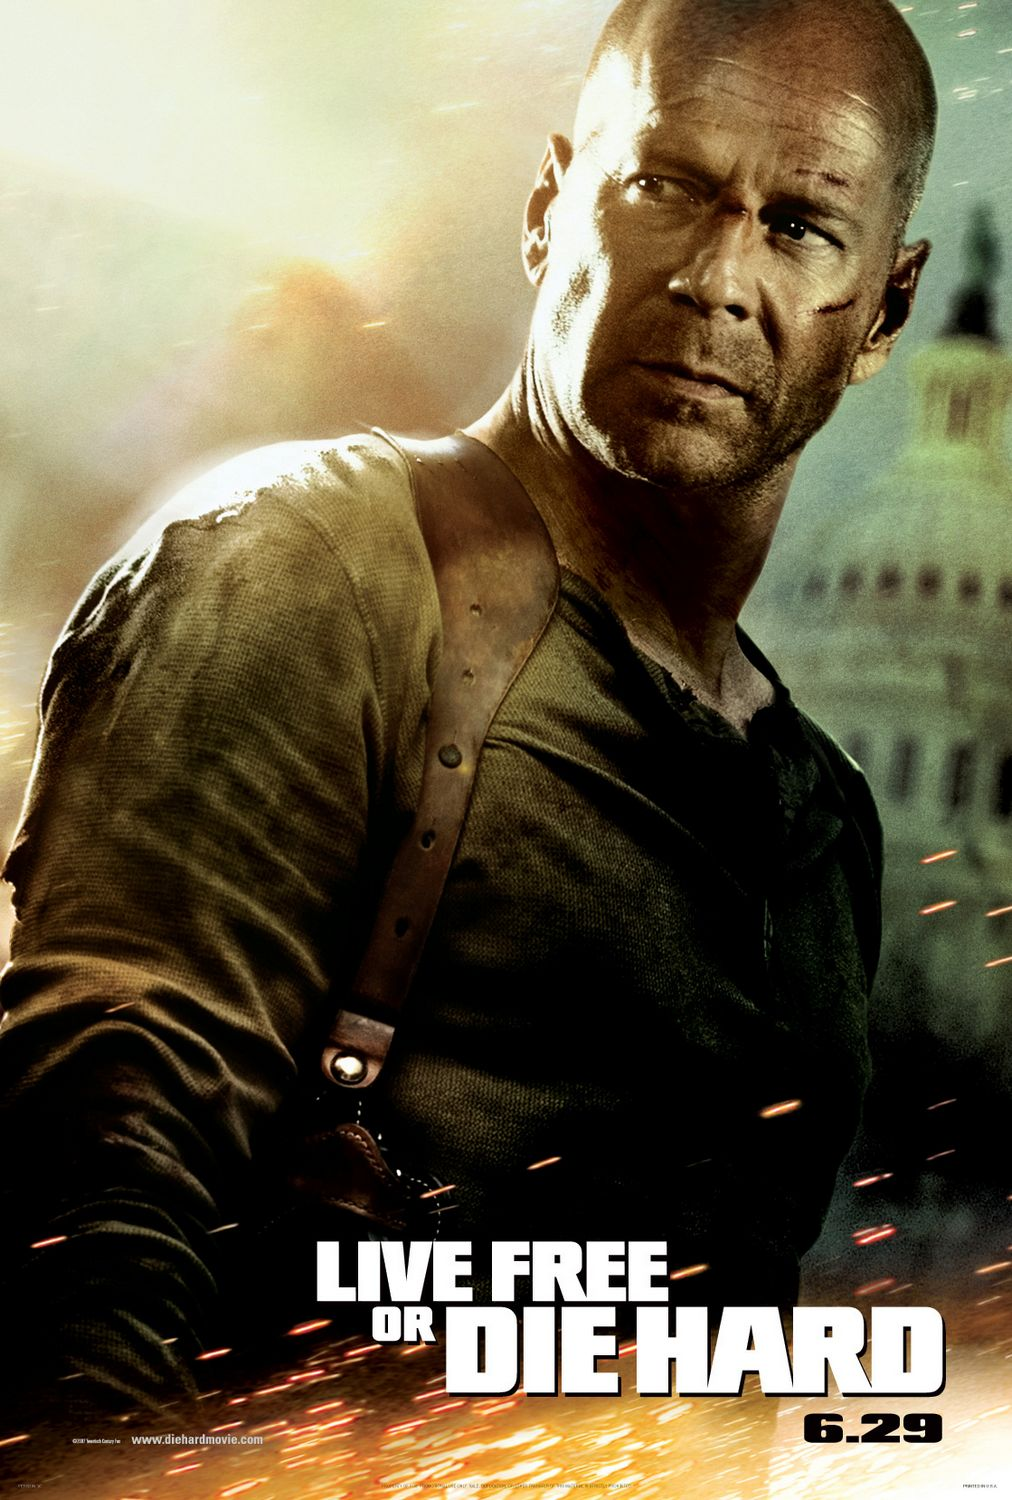 ng u Vi Th Thch 4 - Die Hard 4 Hd 720 - Die Hard 4 : Live Free Or Die Hard (2007) - Die Hard 4 : Live Free Or Die Hard (2007)